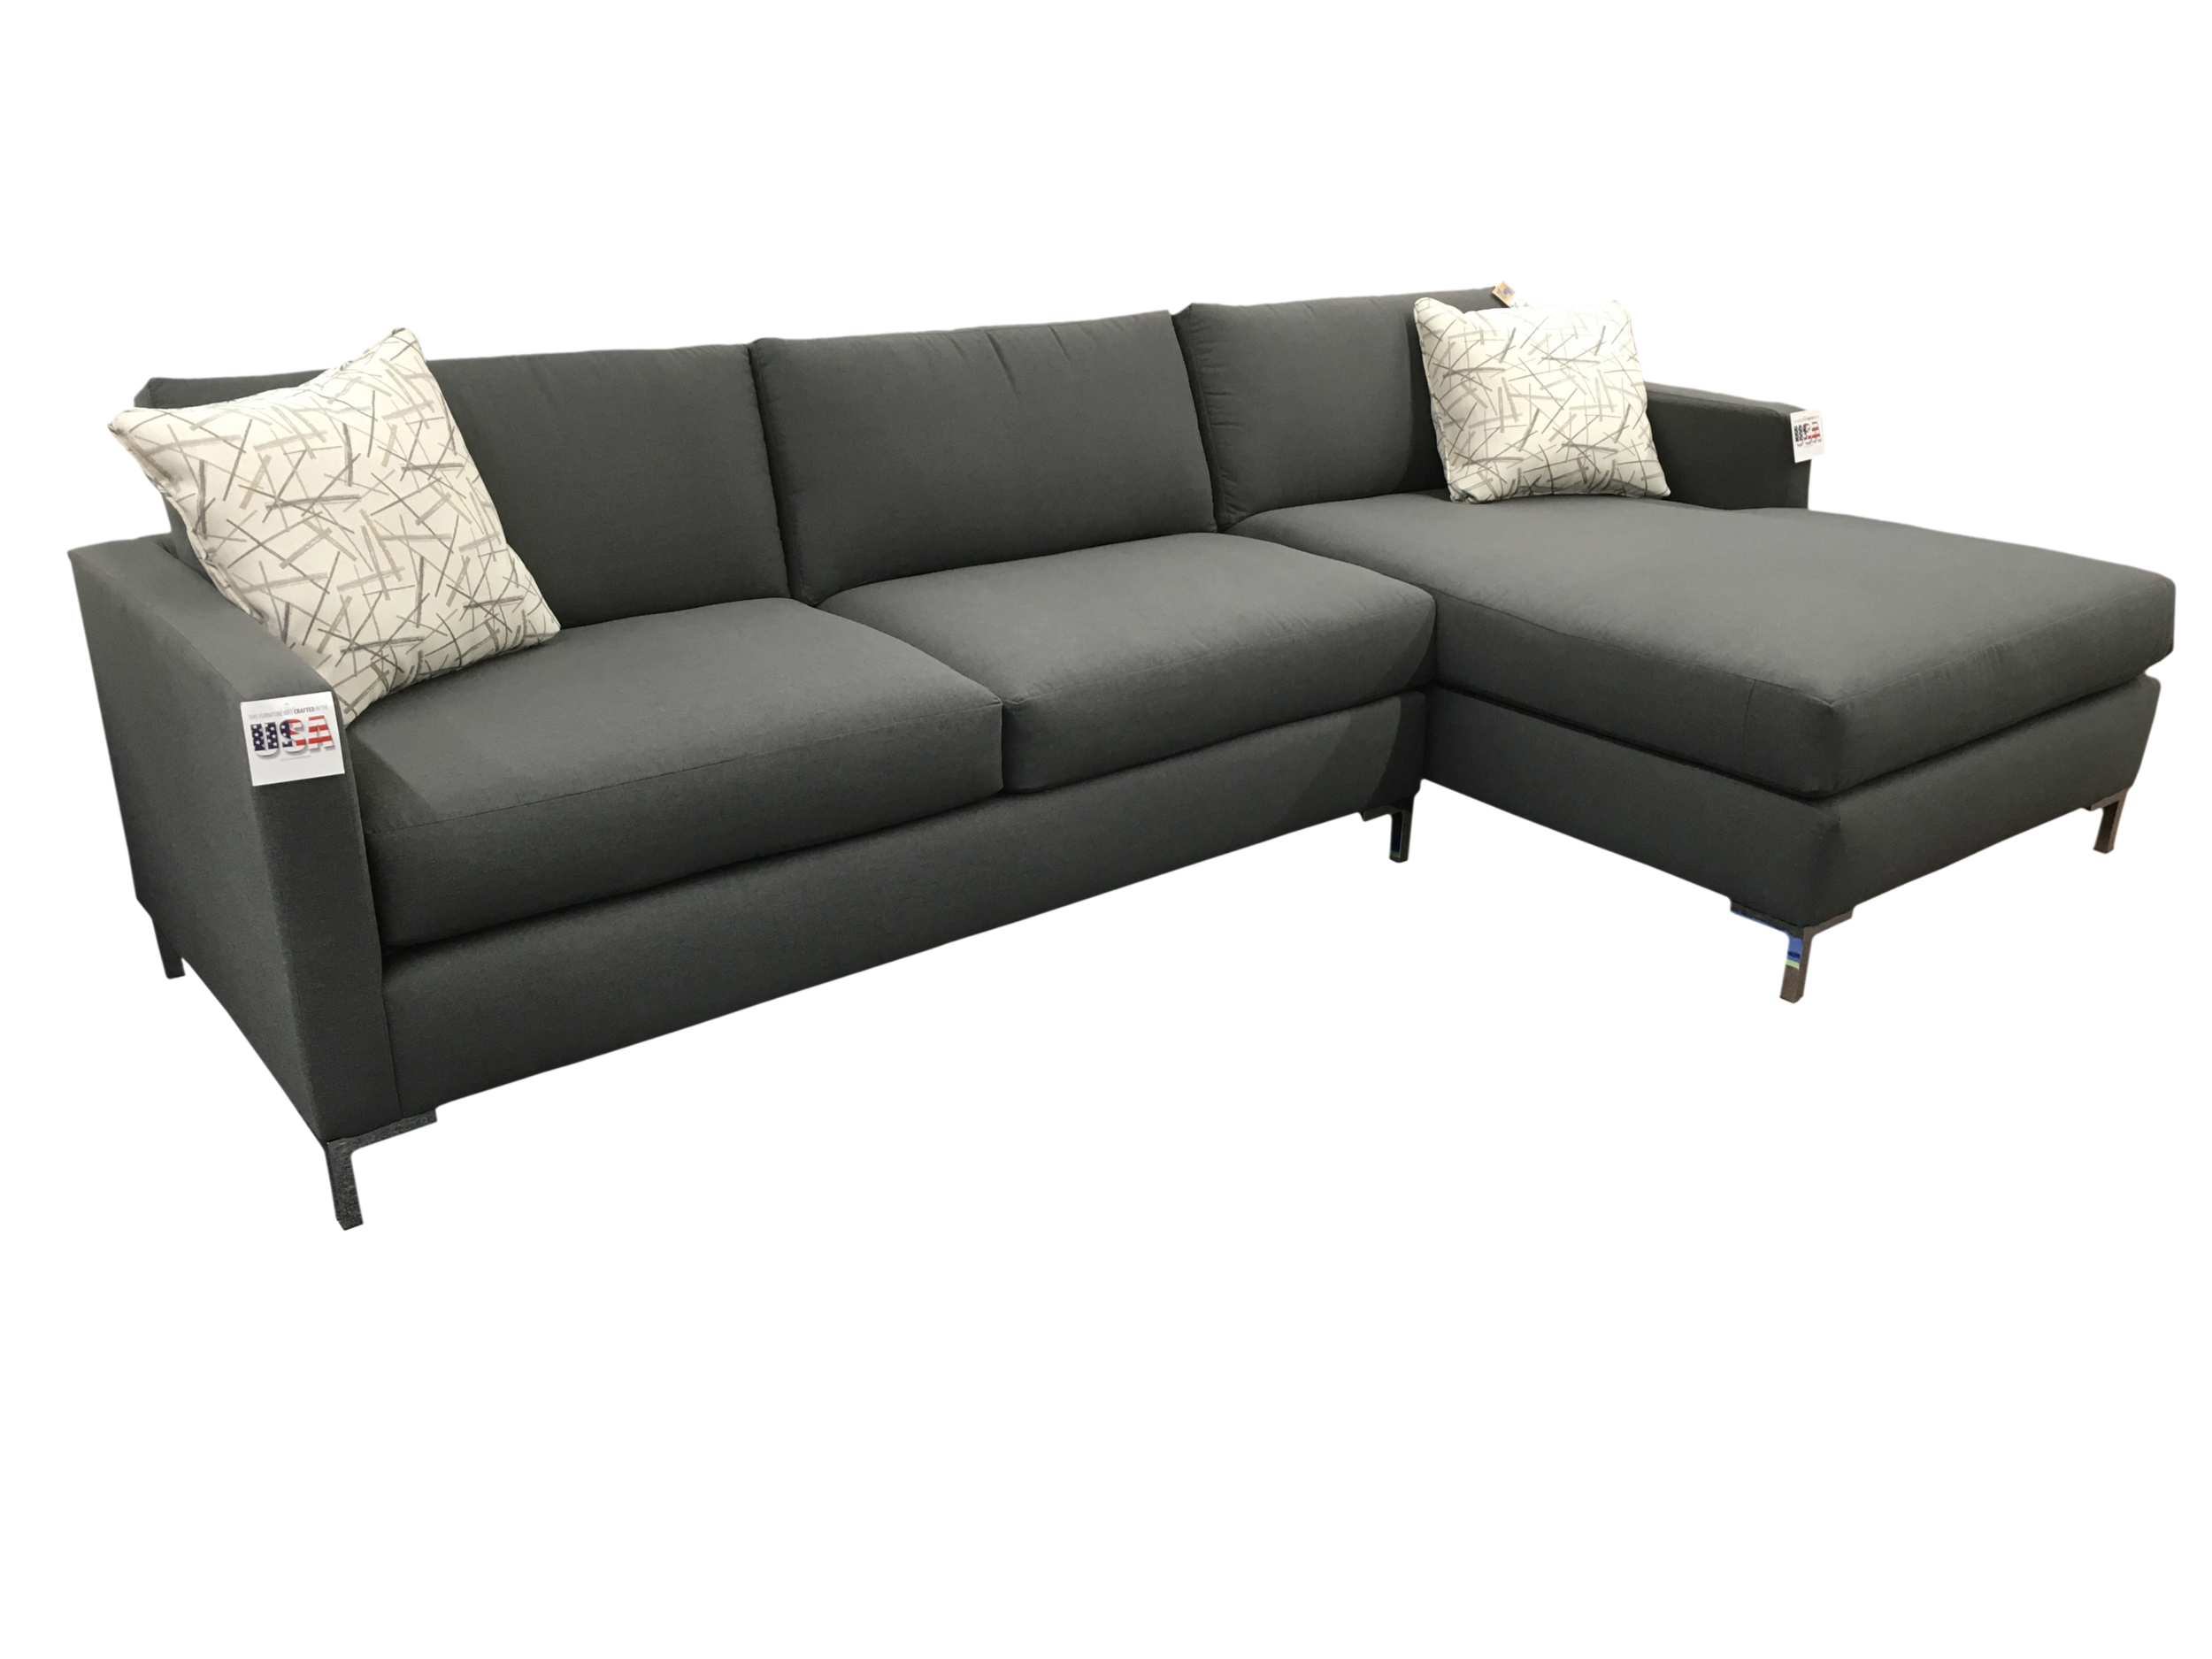 gray_sectional_copy_copy.png